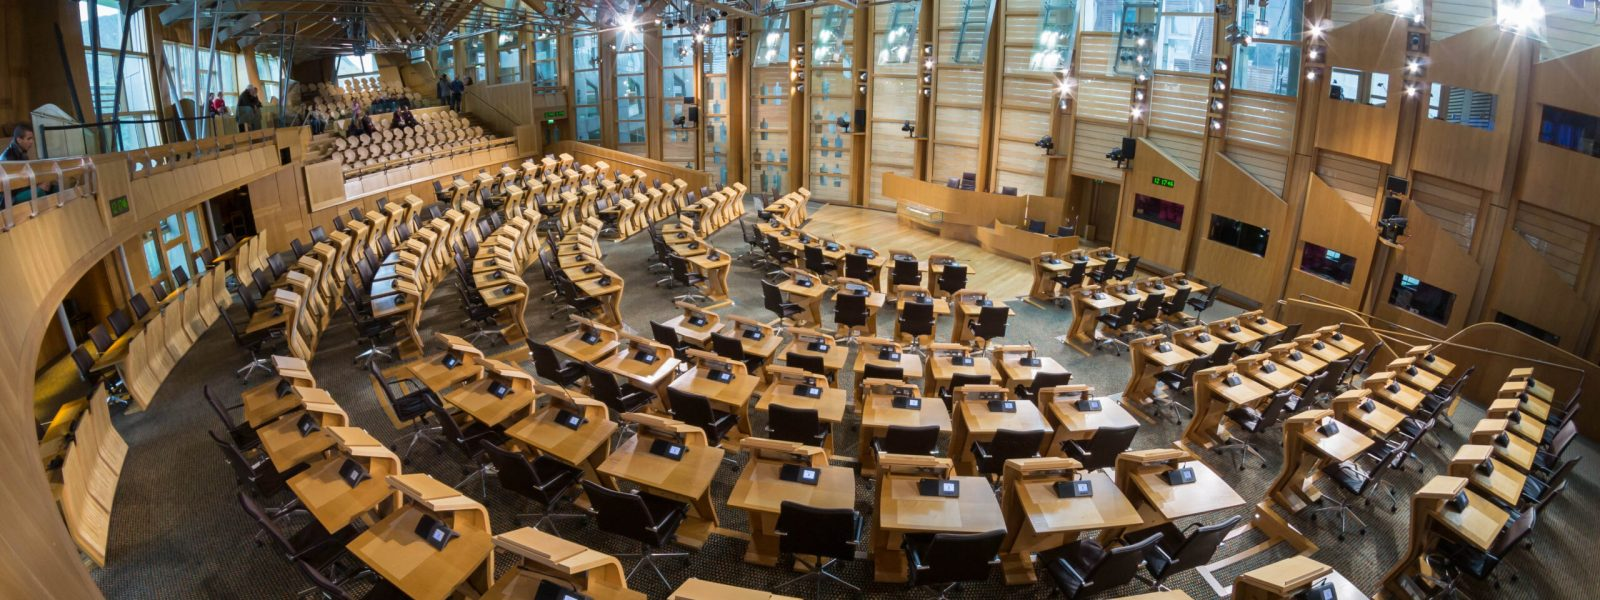 A picture of the interior of the Scottish Parliament